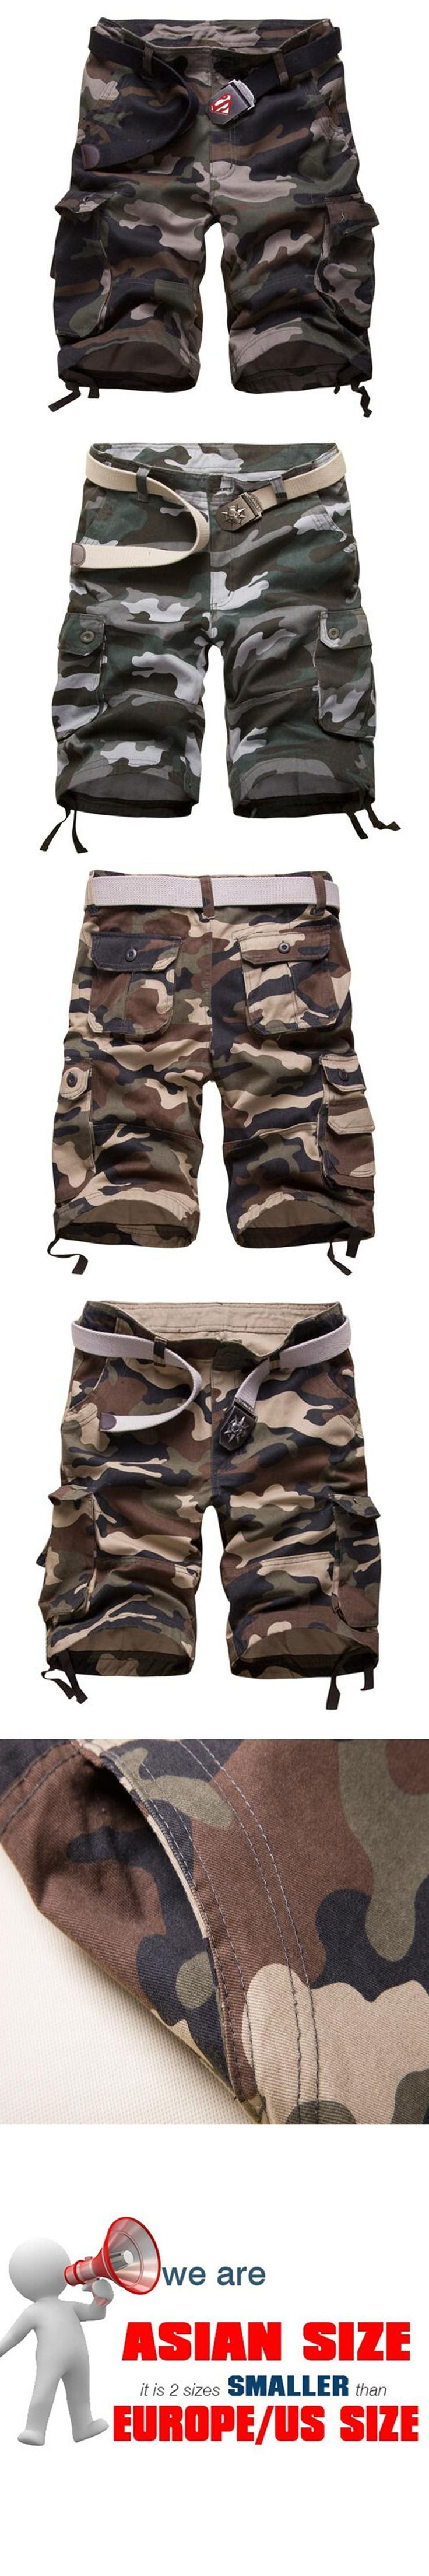 2017 Hot Sale Mens Shorts Casual Cotton Military Camouflage Short Summer Size 29-42(no belt)